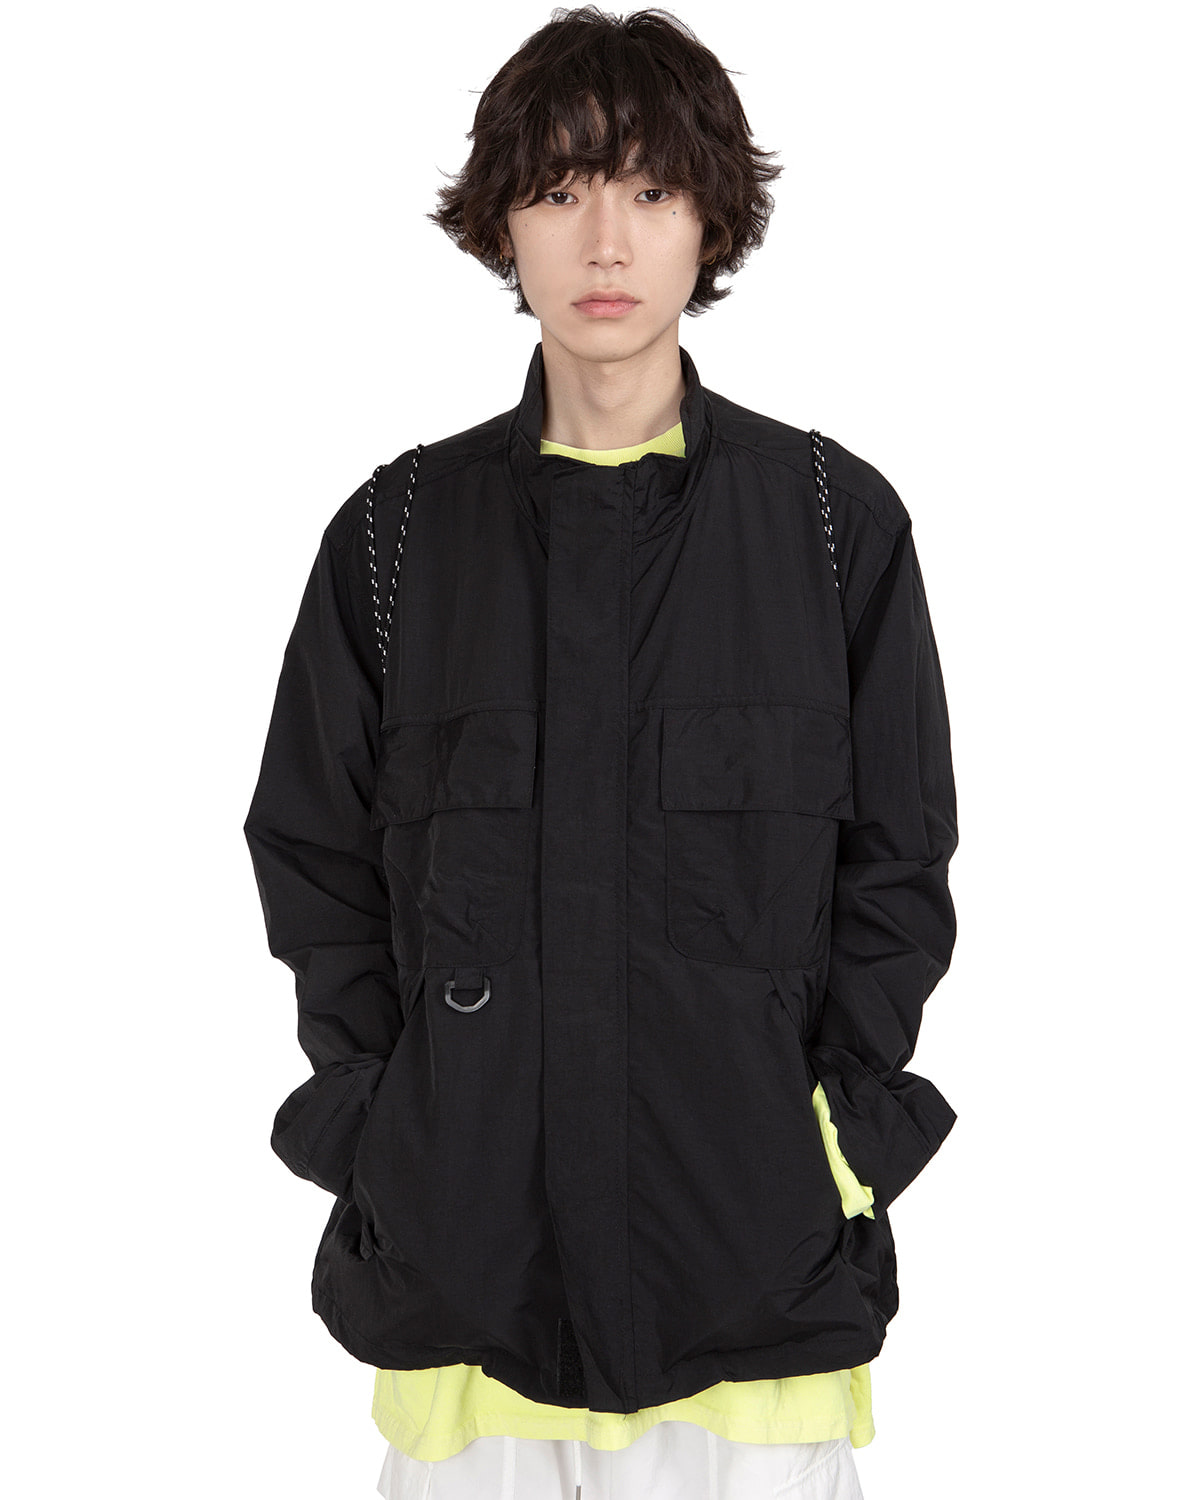 raucohouse-NYLON D RING DETAIL POCKET JACKET - RAUCO HOUSE♡韓國男裝外套